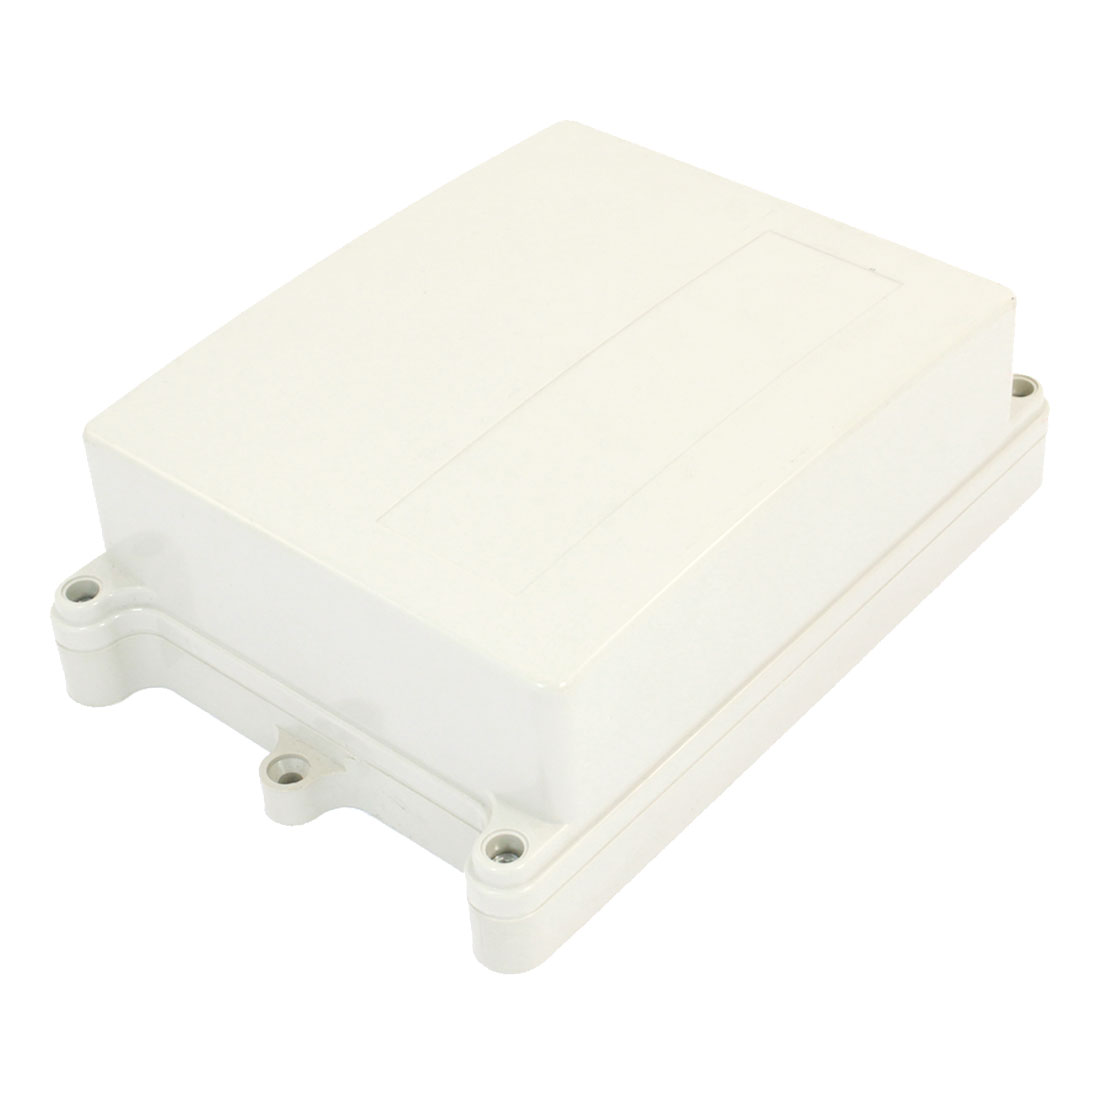 Rectangular Plastic DIY Junction Box Case 180 x 150 x 70mm